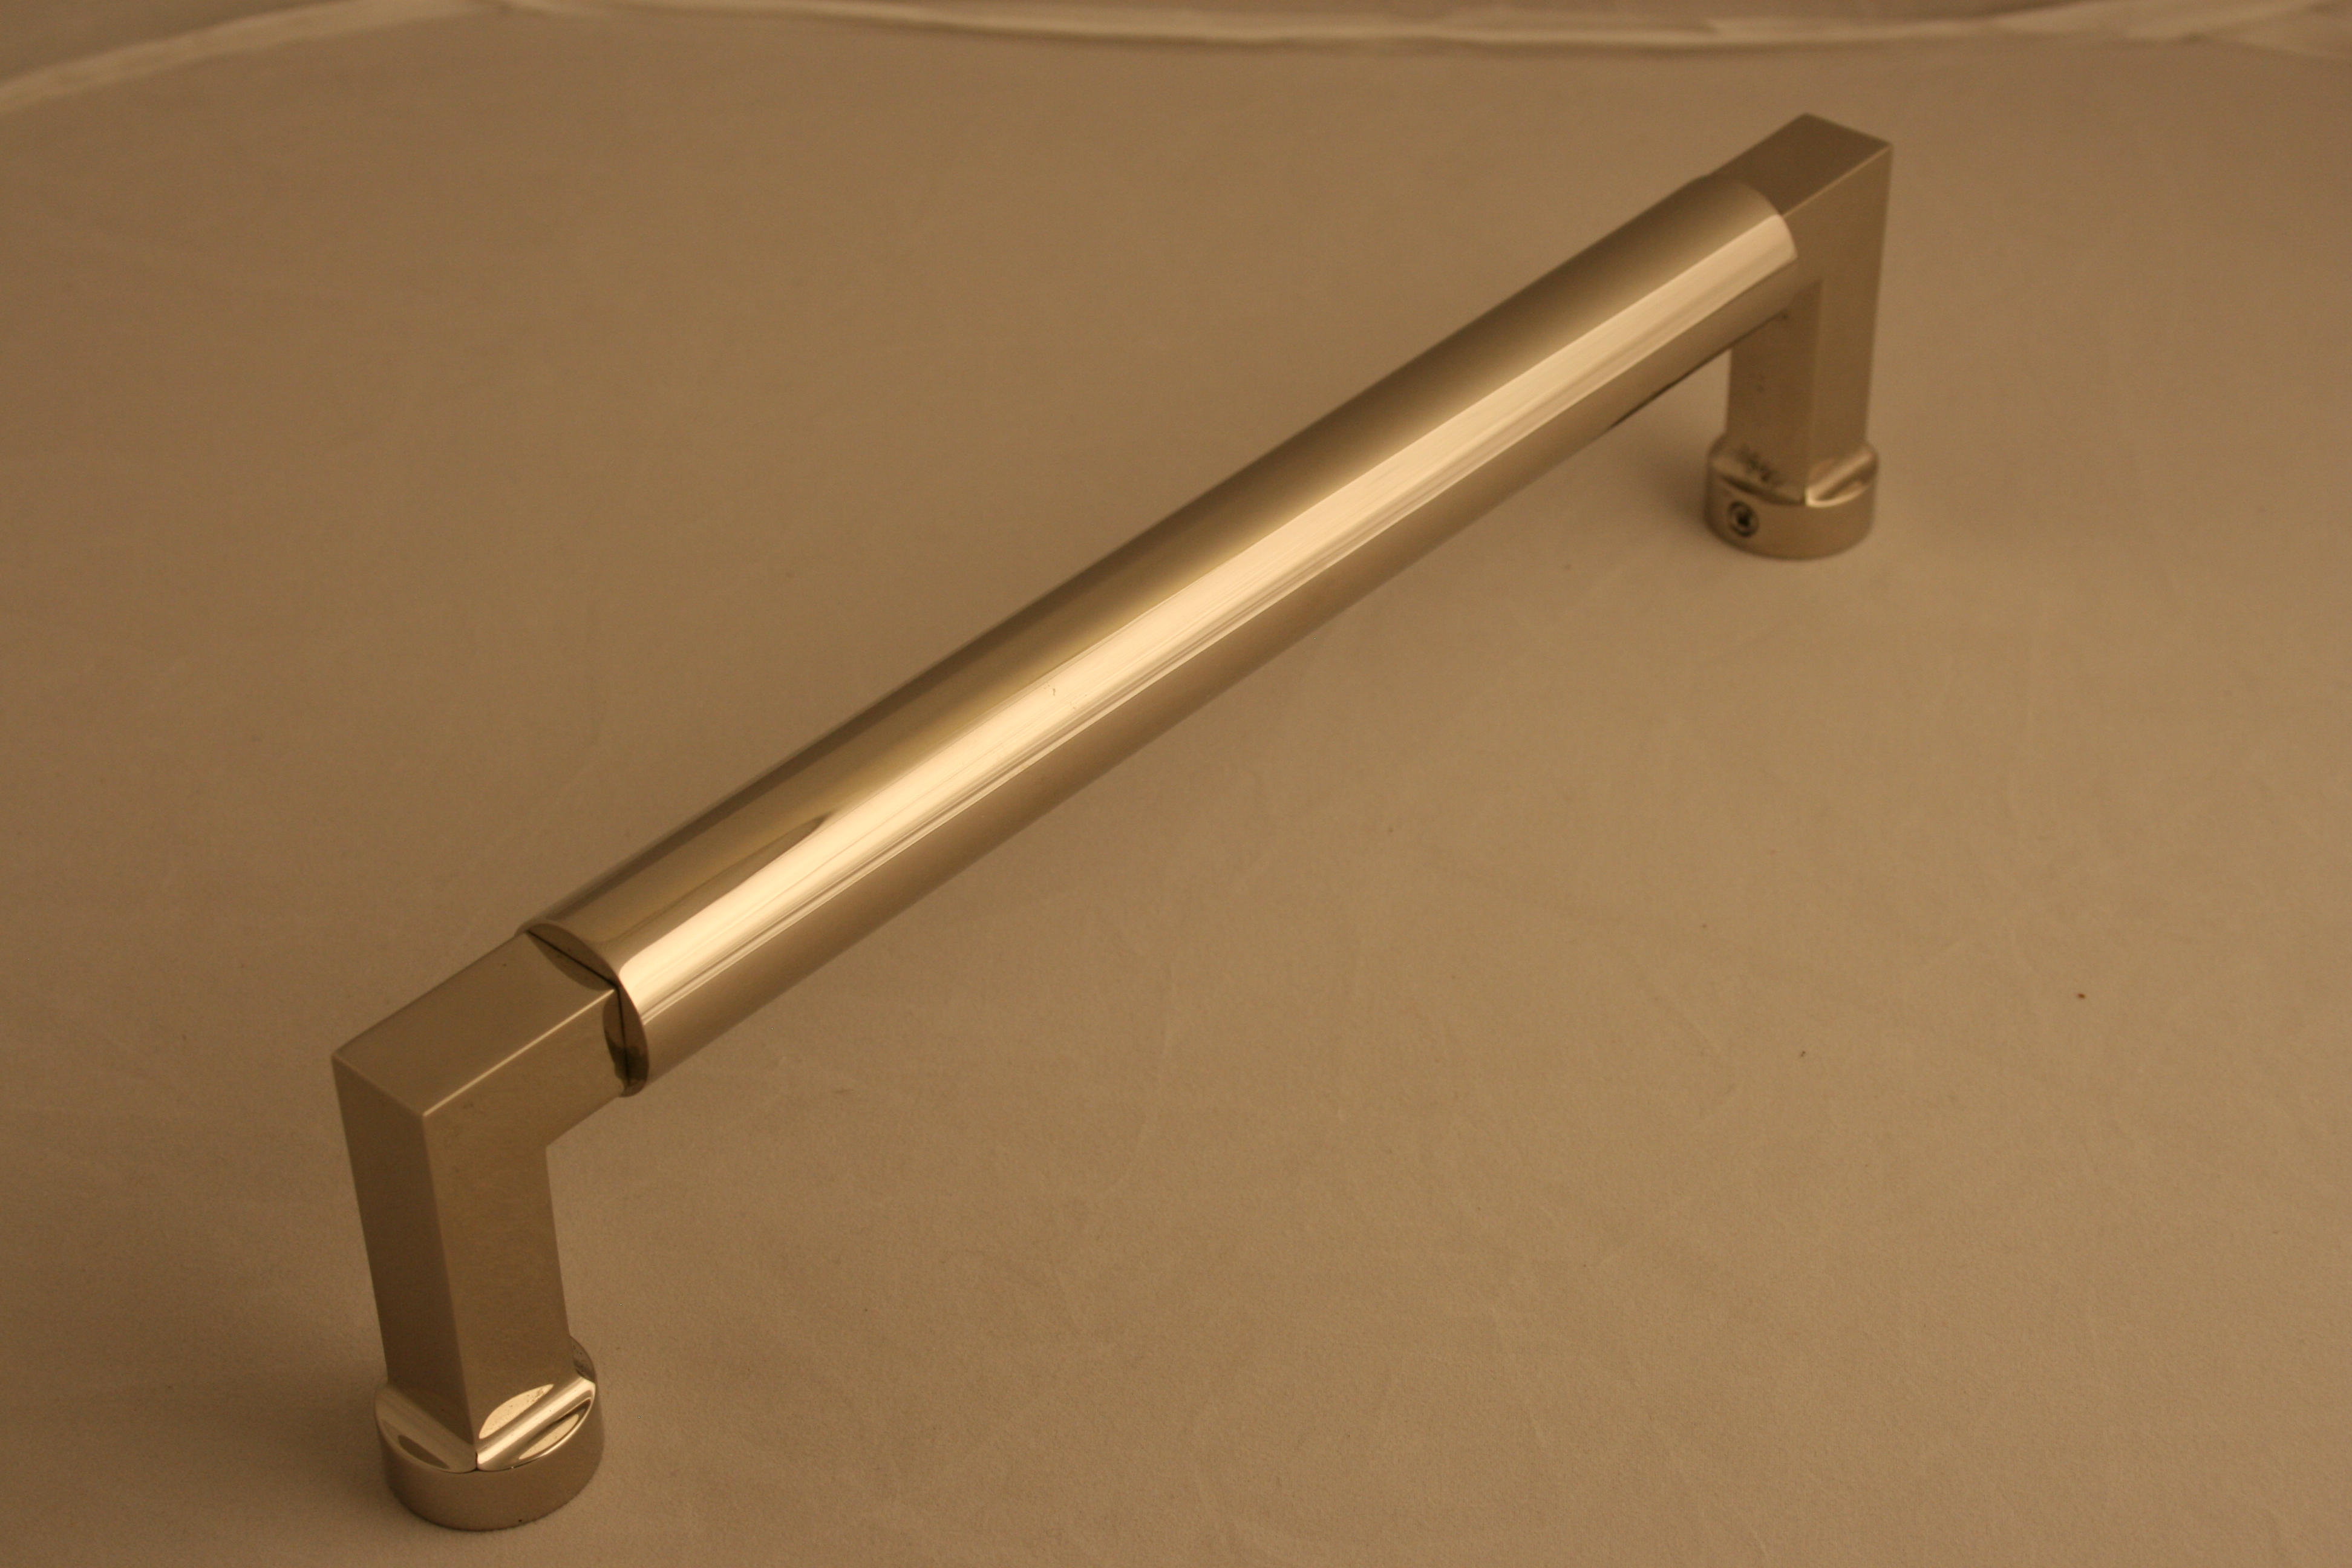 Gropious Pull Polished Nickel The Fine Architectural Hardware Blog